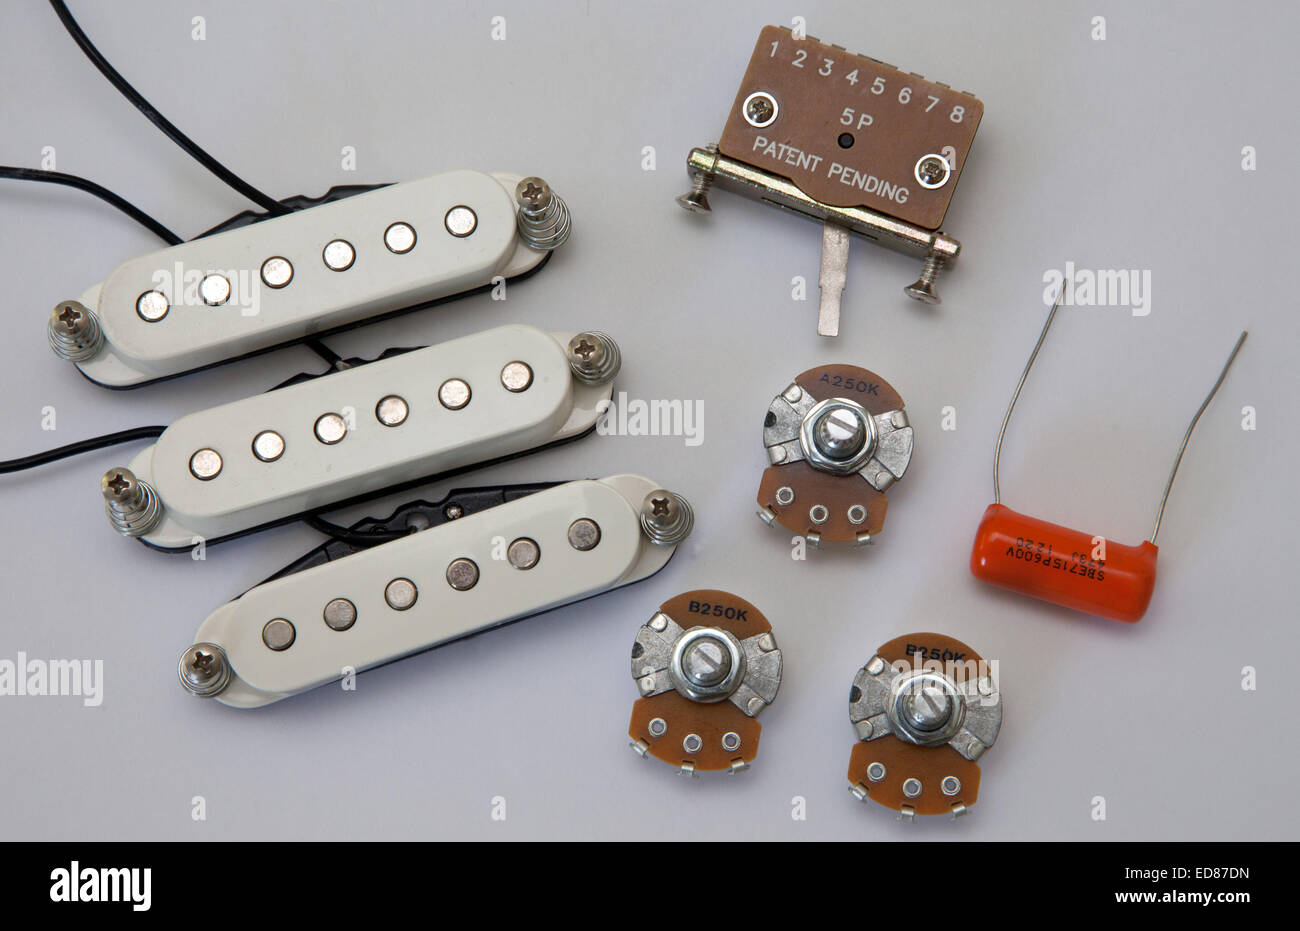 Components of an electric guitar, pick ups, volume tone controls ...